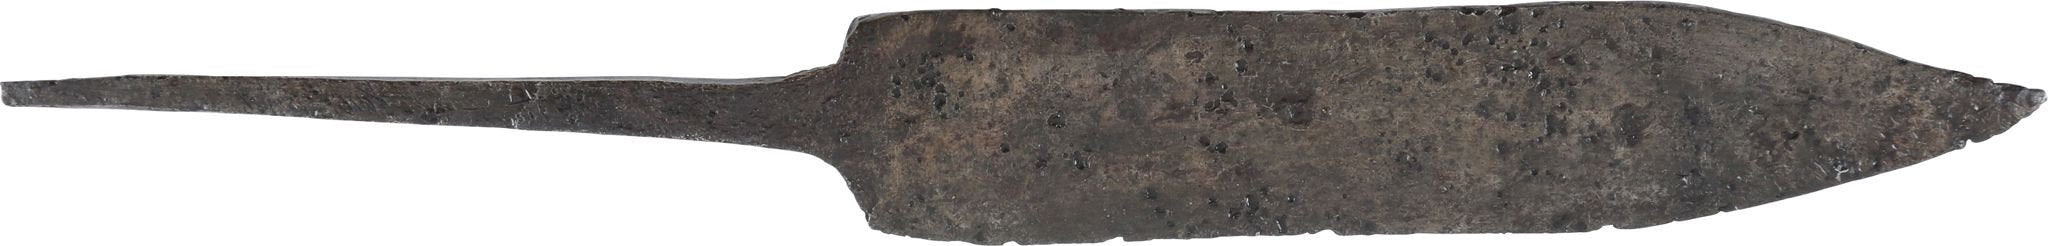 Extraordinary Viking Scramseax C.850-1050 Ad - Product